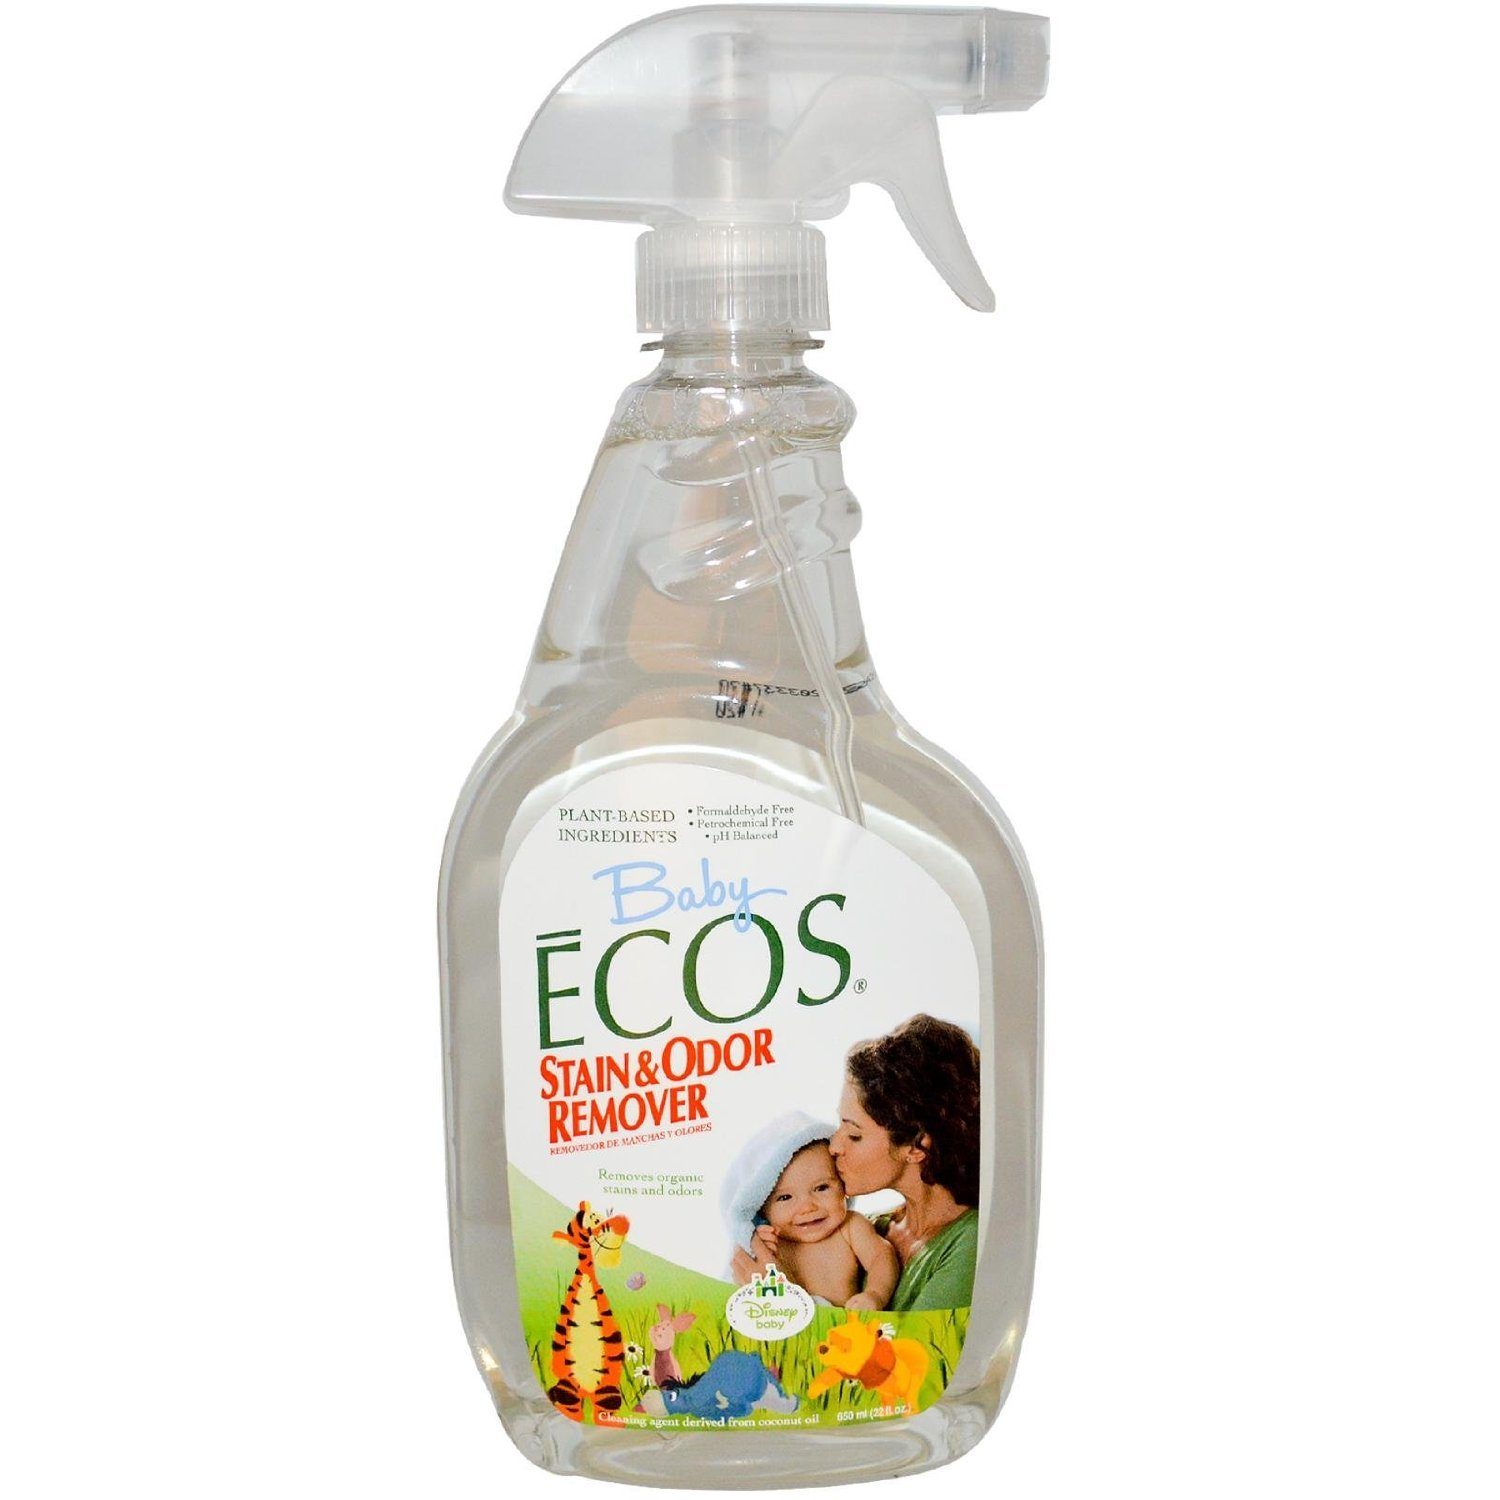 Earth Friendly Baby Ecos Stain Odor Remover [094537]